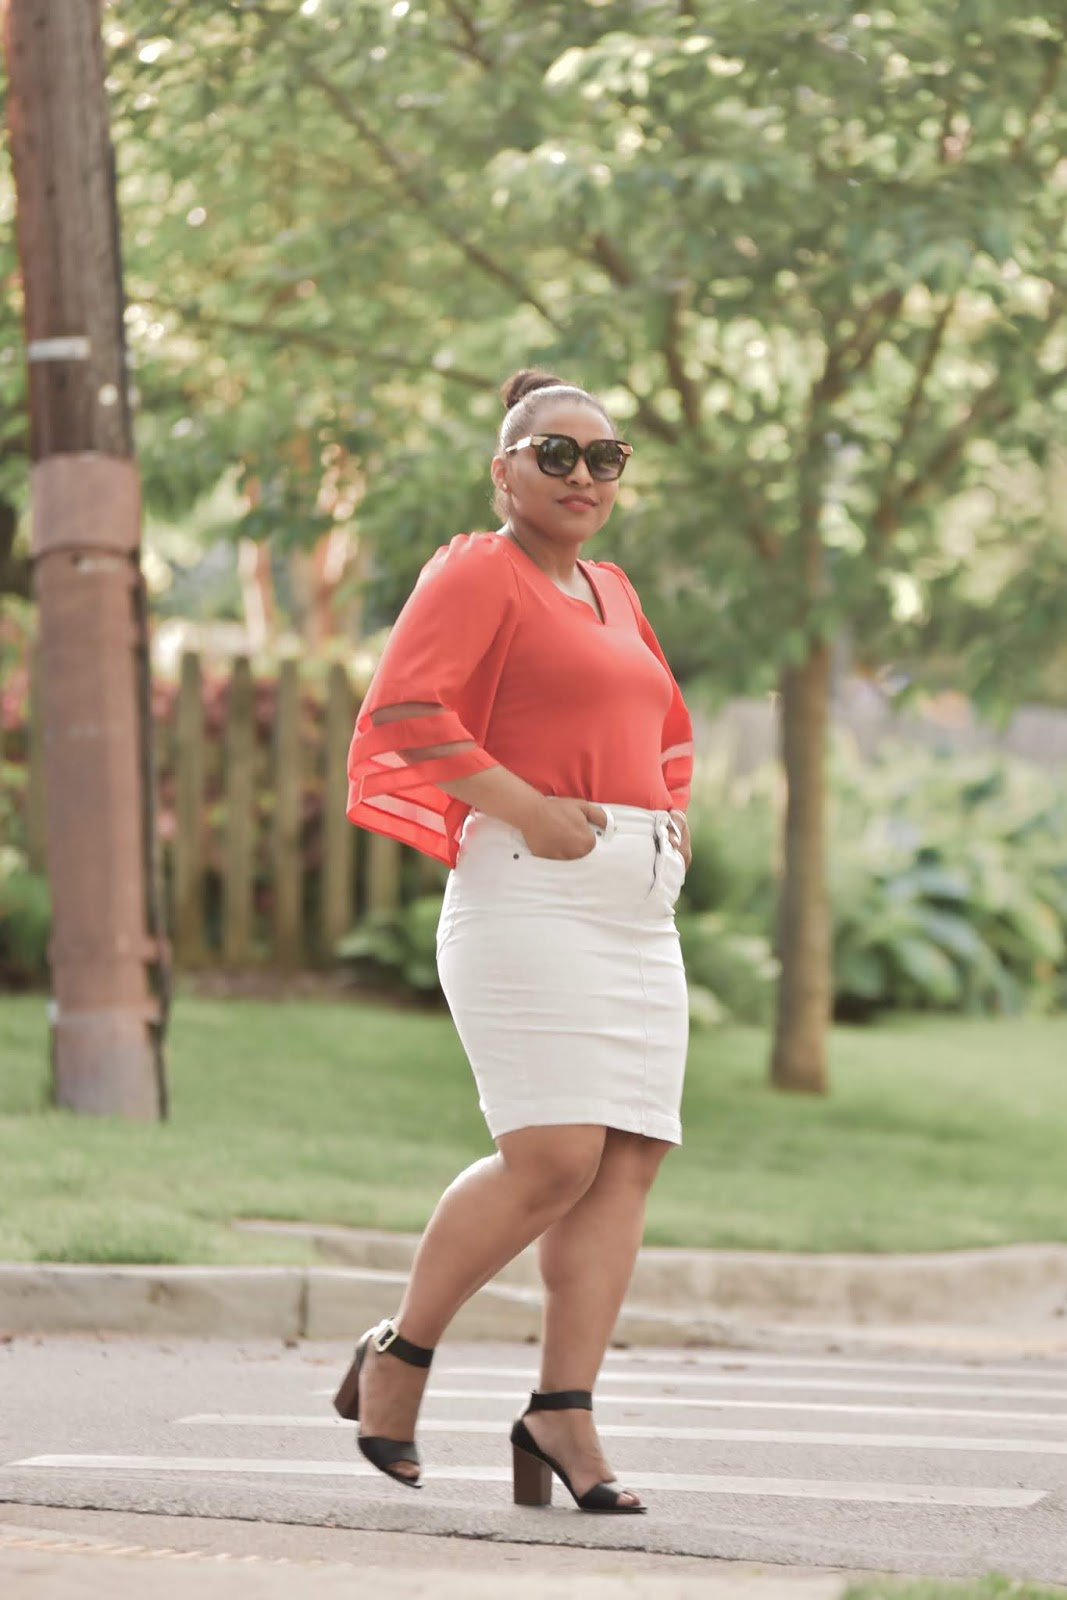 lookbook store, summer outfits, summer outfit ideas, dc bloggers, mom bloggers, white skirt, midi skirts